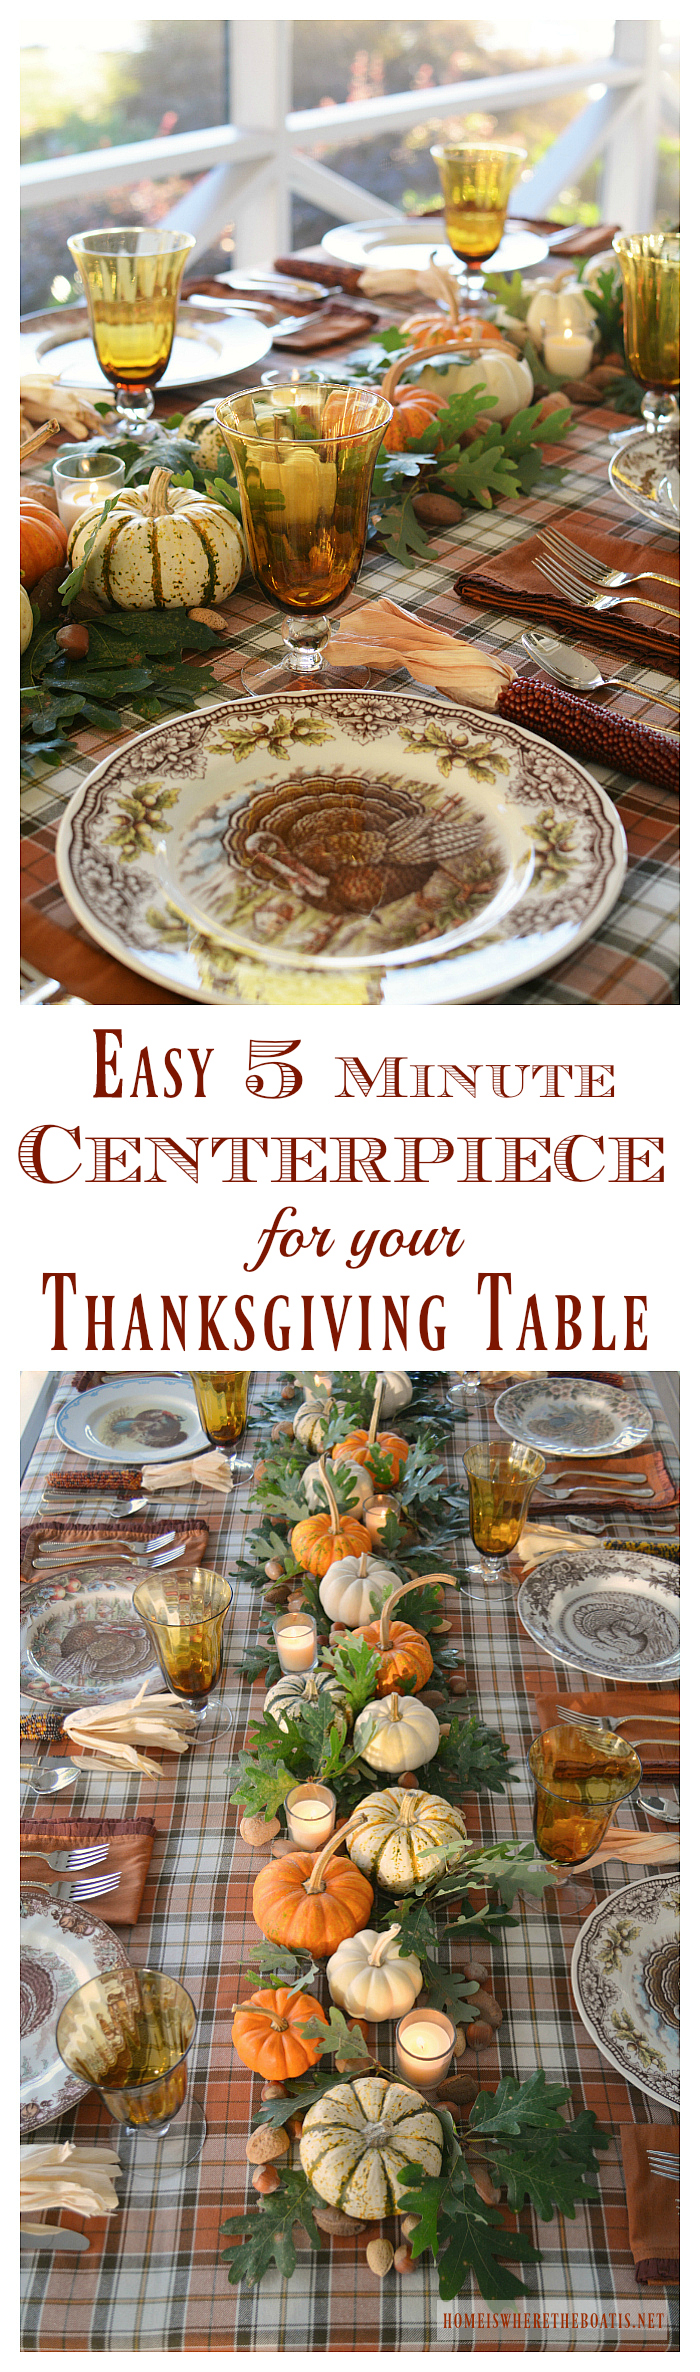 Easy 5 Minute Centerpiece for your Thanksgiving table | ©homeiswheretheboatis.net #Thanksgiving #tablescapes #easy #centerpiece